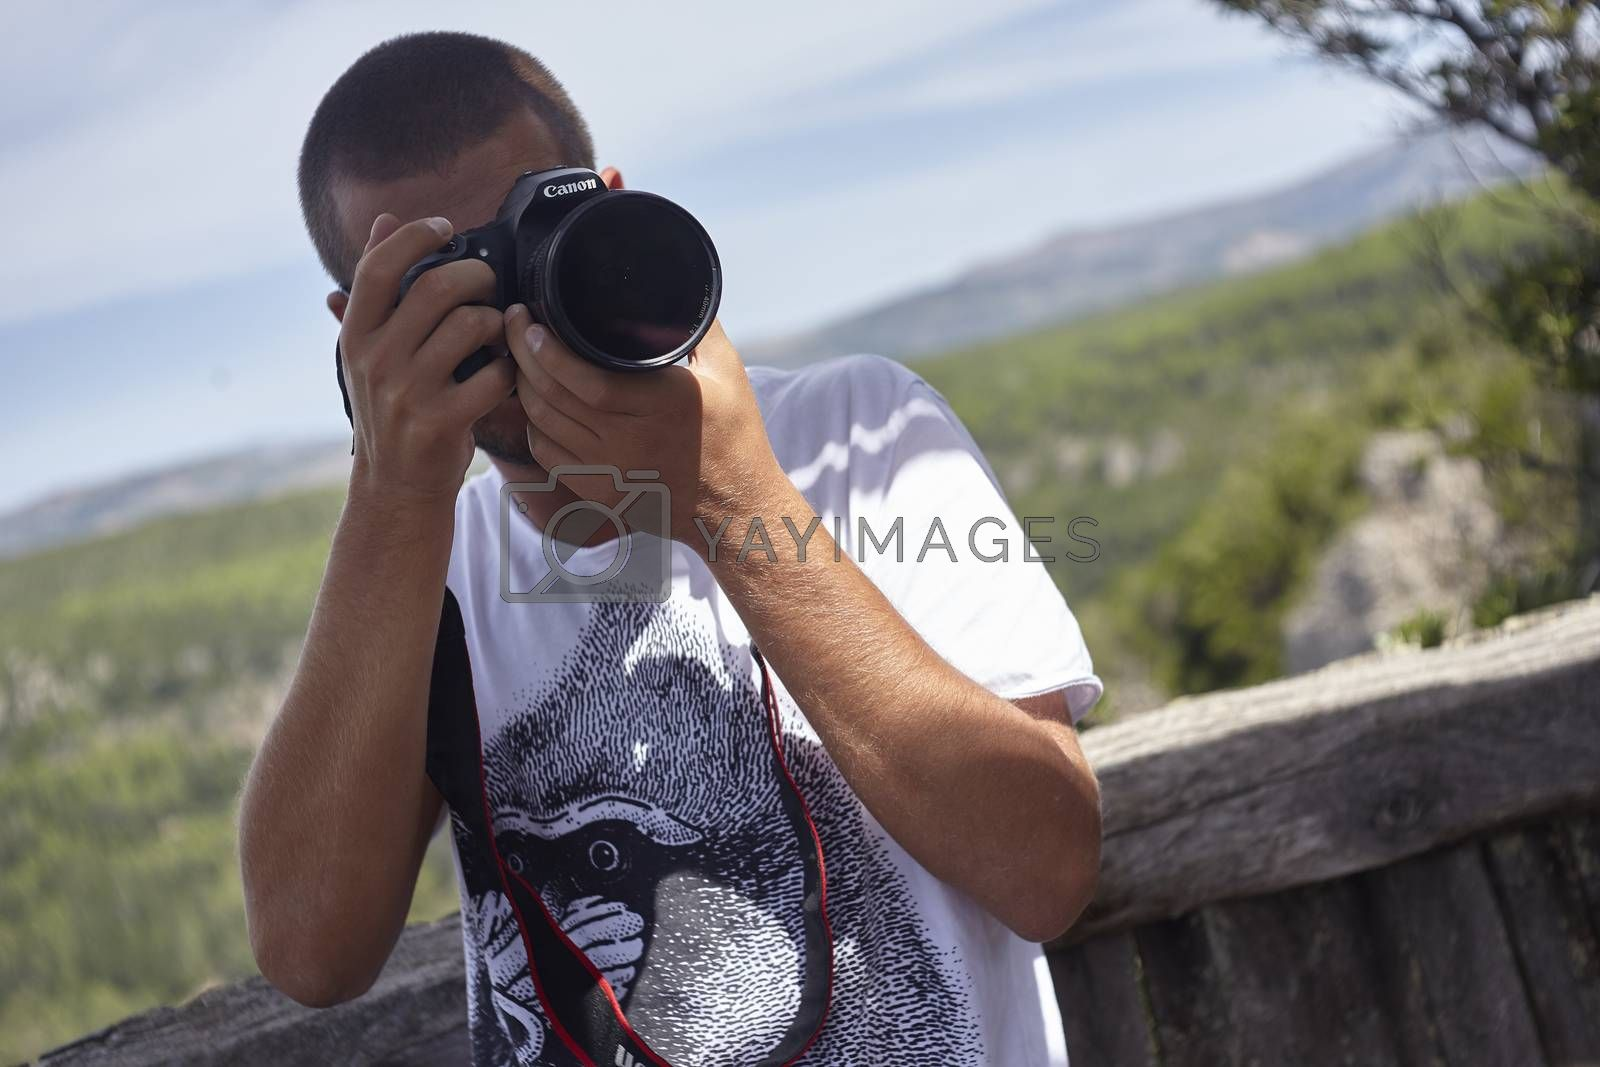 Photographer in nature in action during a sunny day